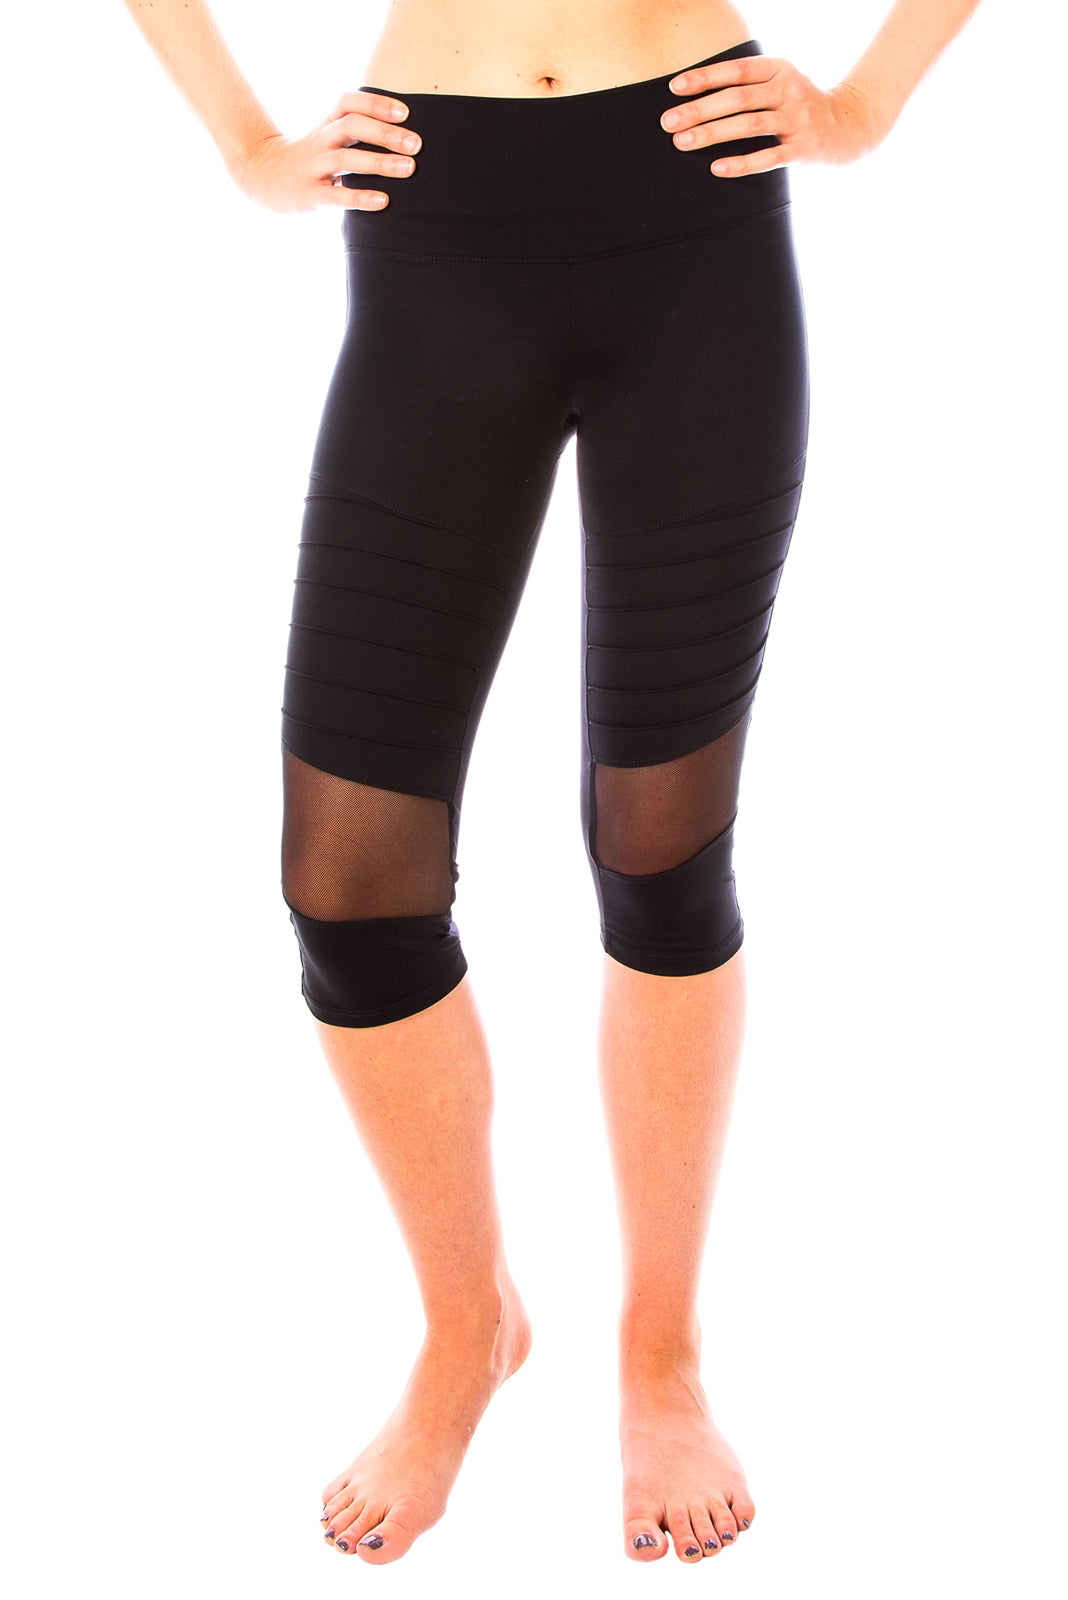 Moto Chick Capri Yoga Pants - Black